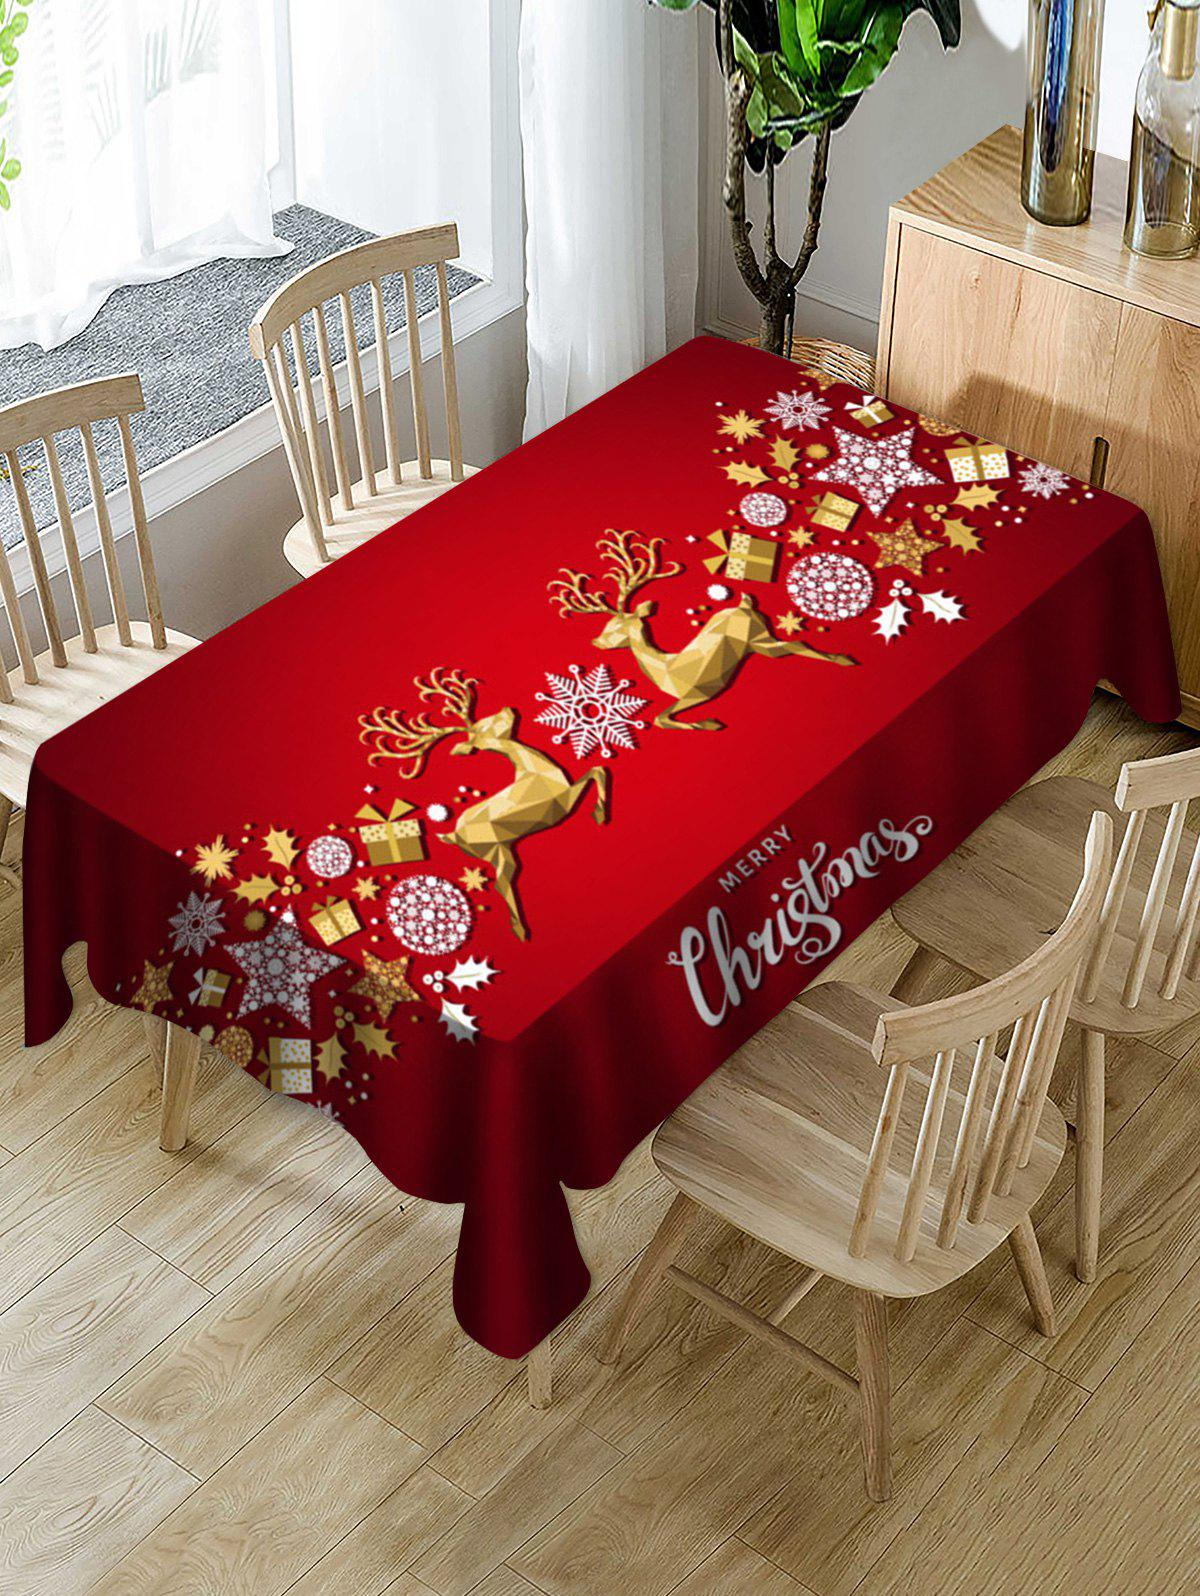 Hot Christmas Elk Balls Stars Greeting Print Waterproof Fabric Tablecloth